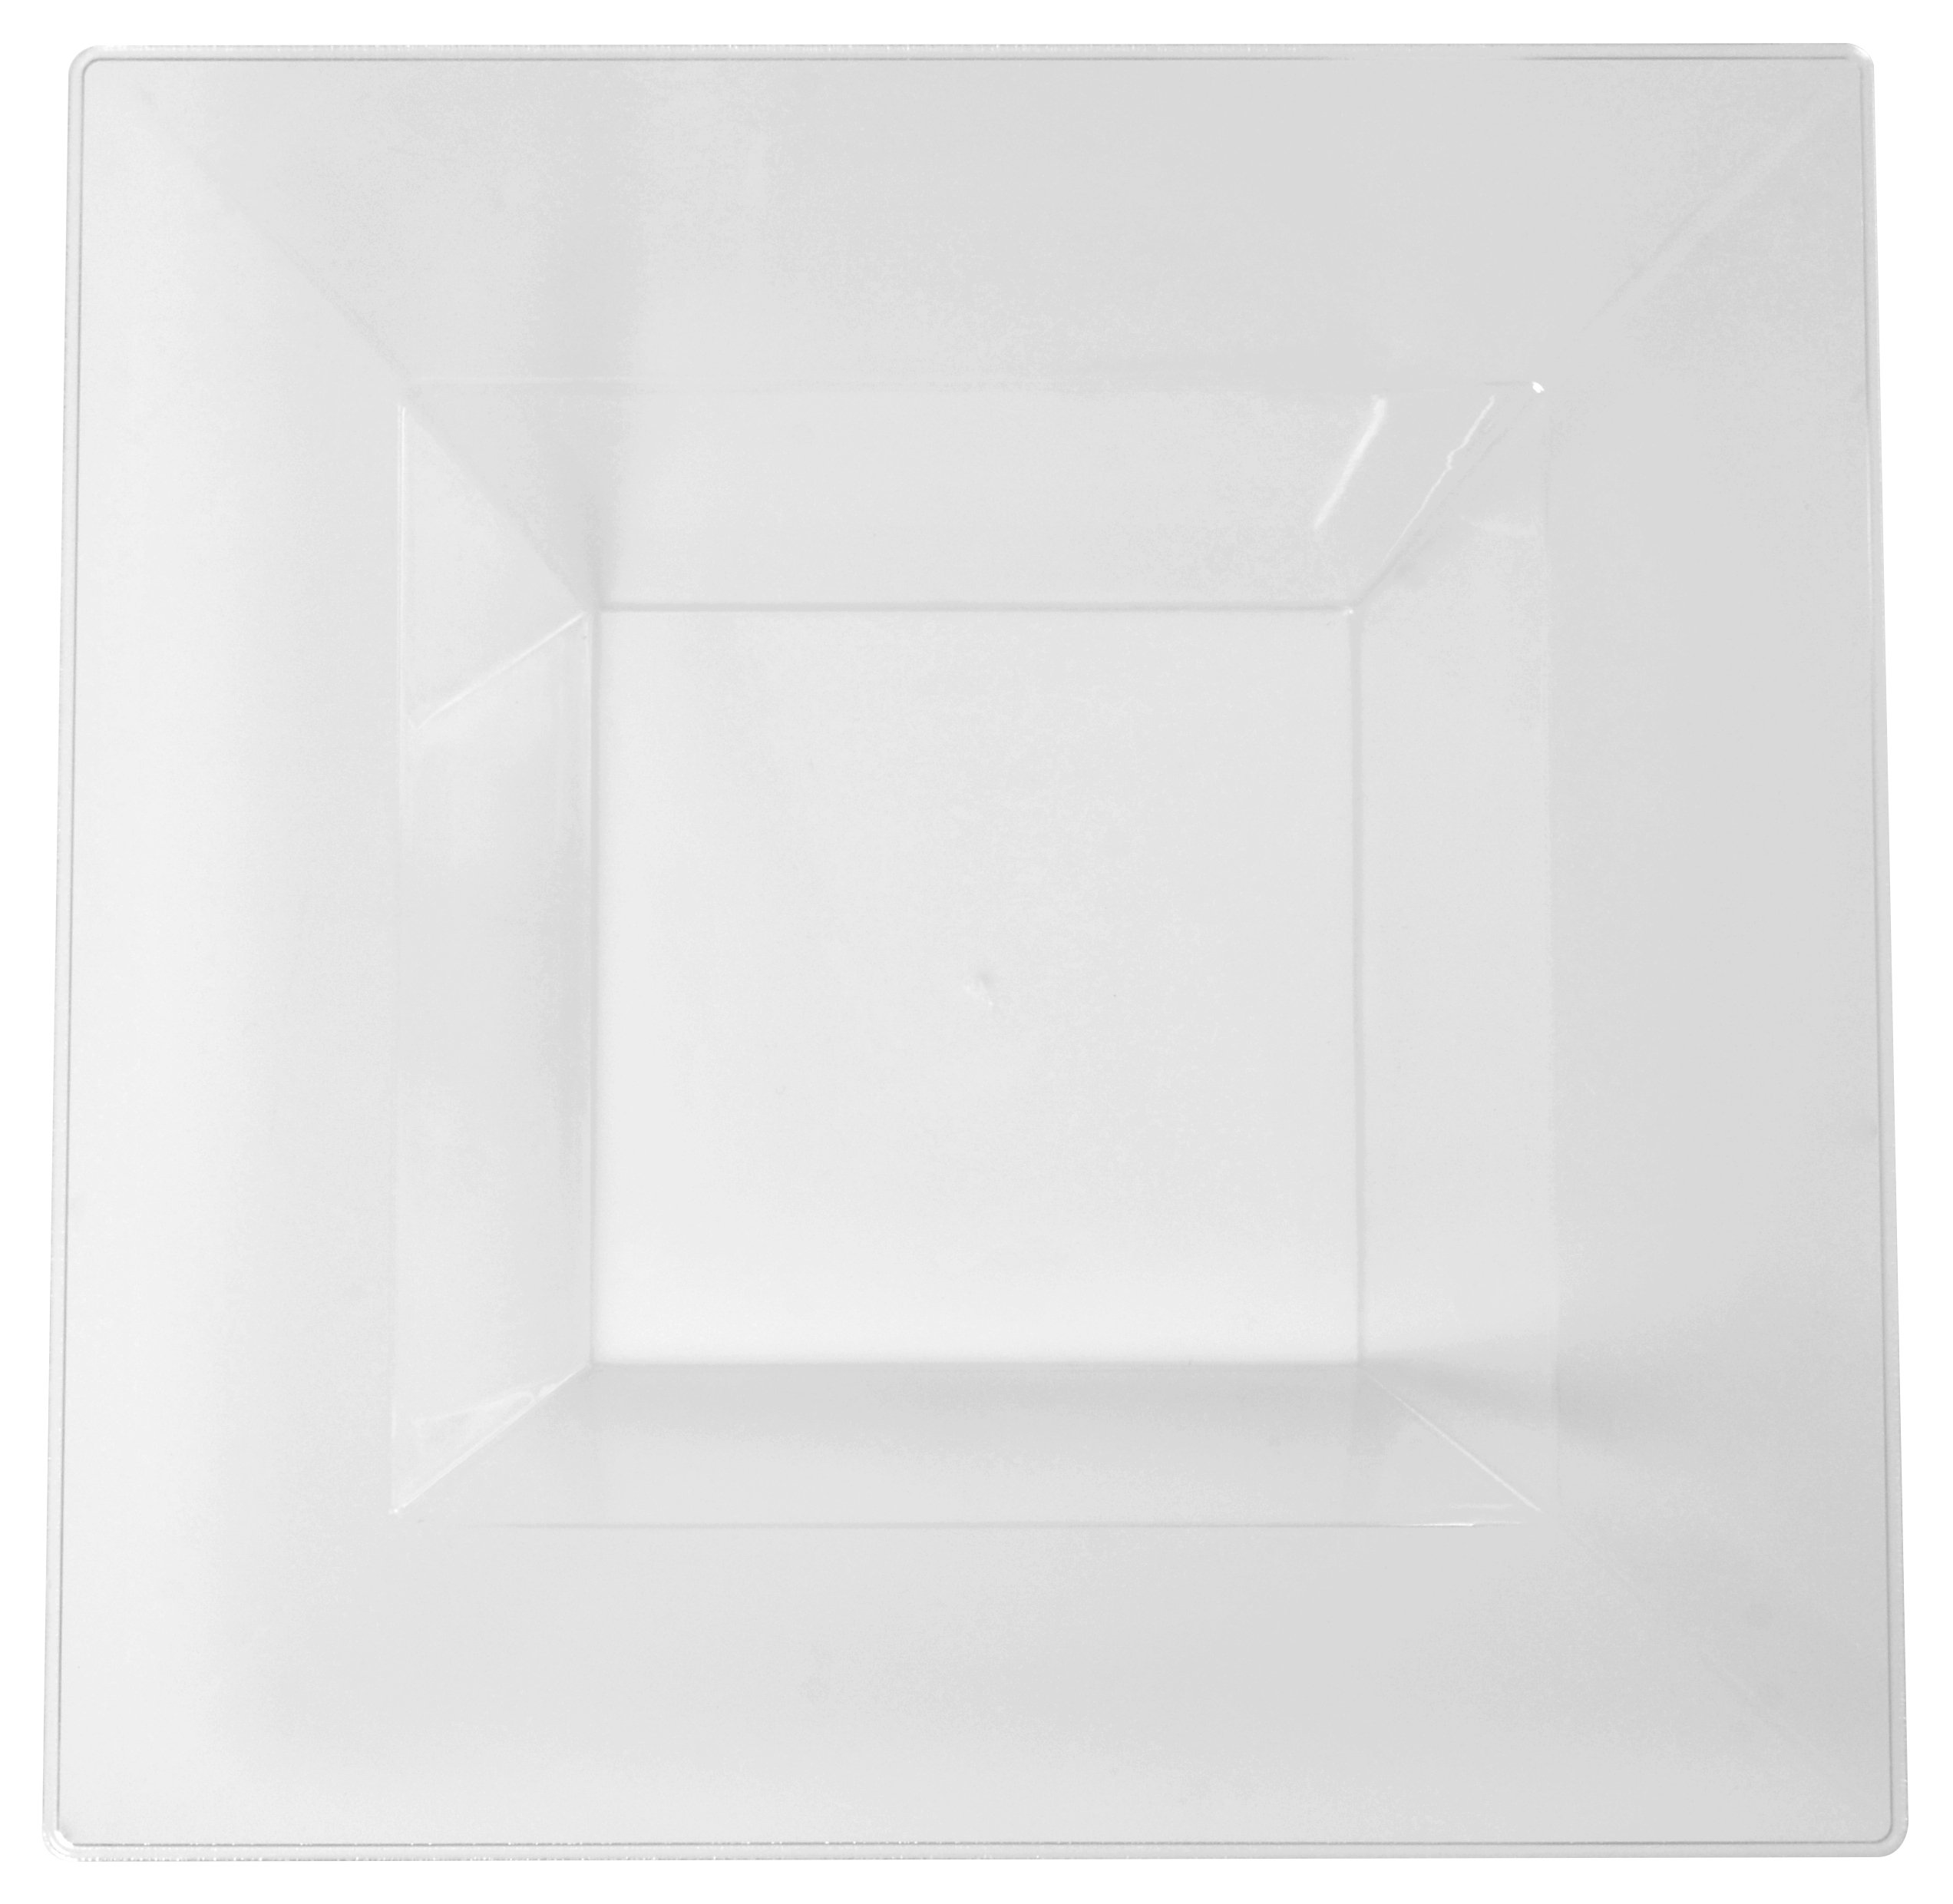 Fineline 12 oz Square Bowl Clear (Case of 120) (10 x 12), Clear